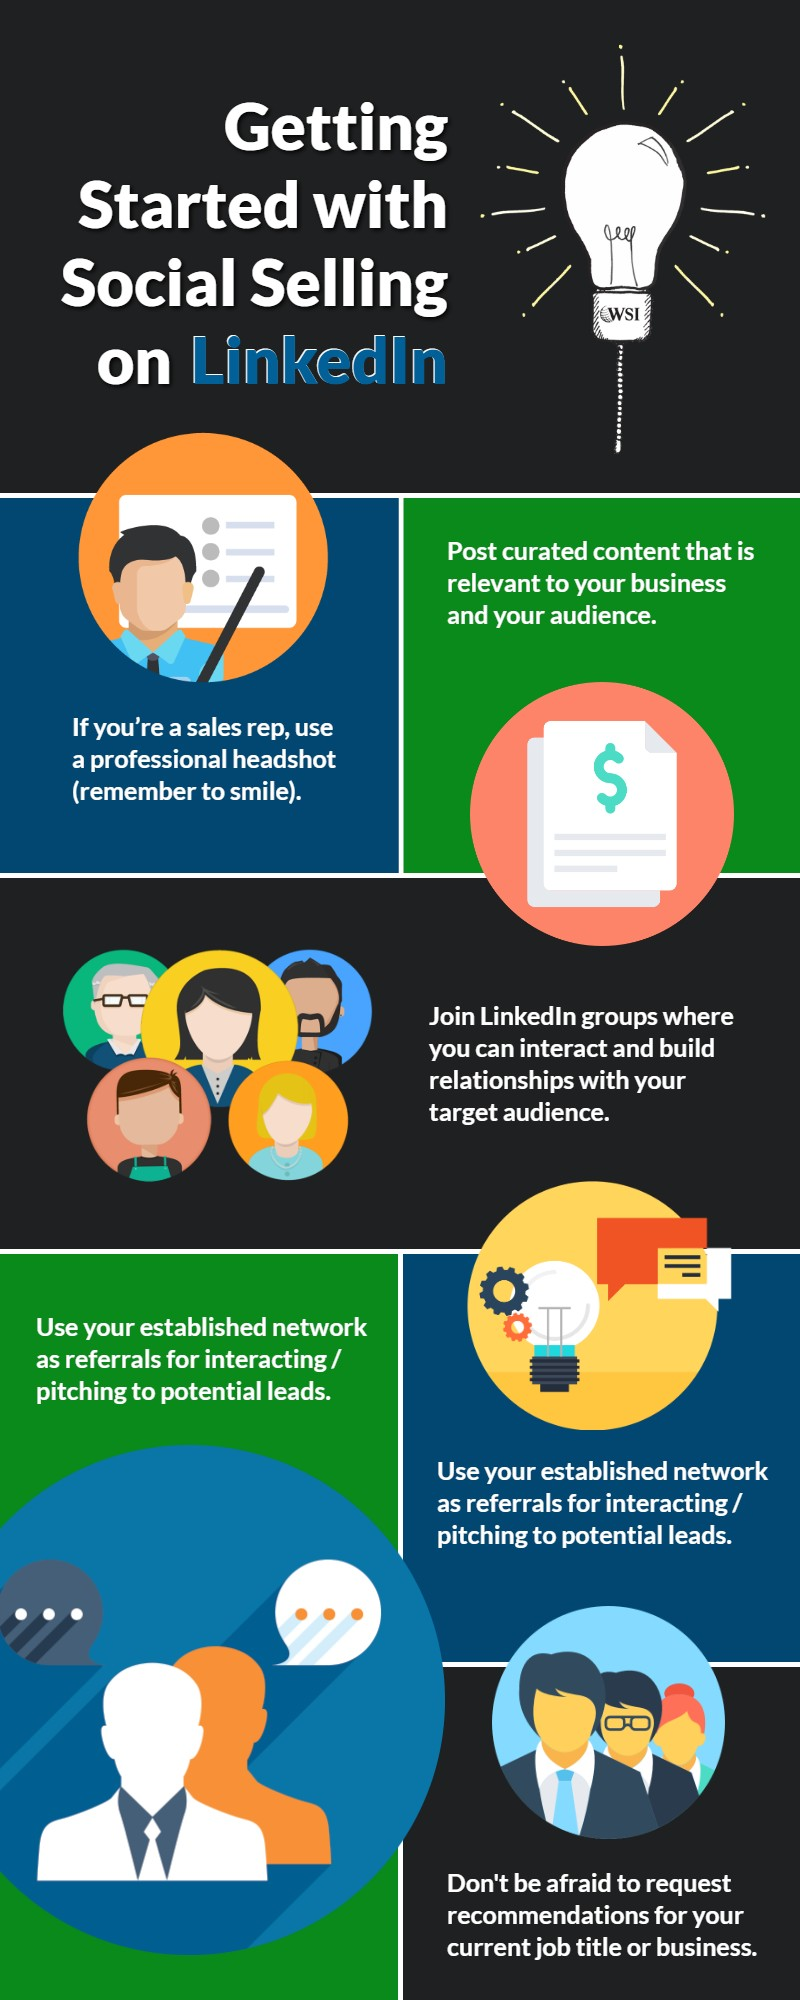 Getting started with Social Selling on LinkedIn | Infographic | WSI Ottawa